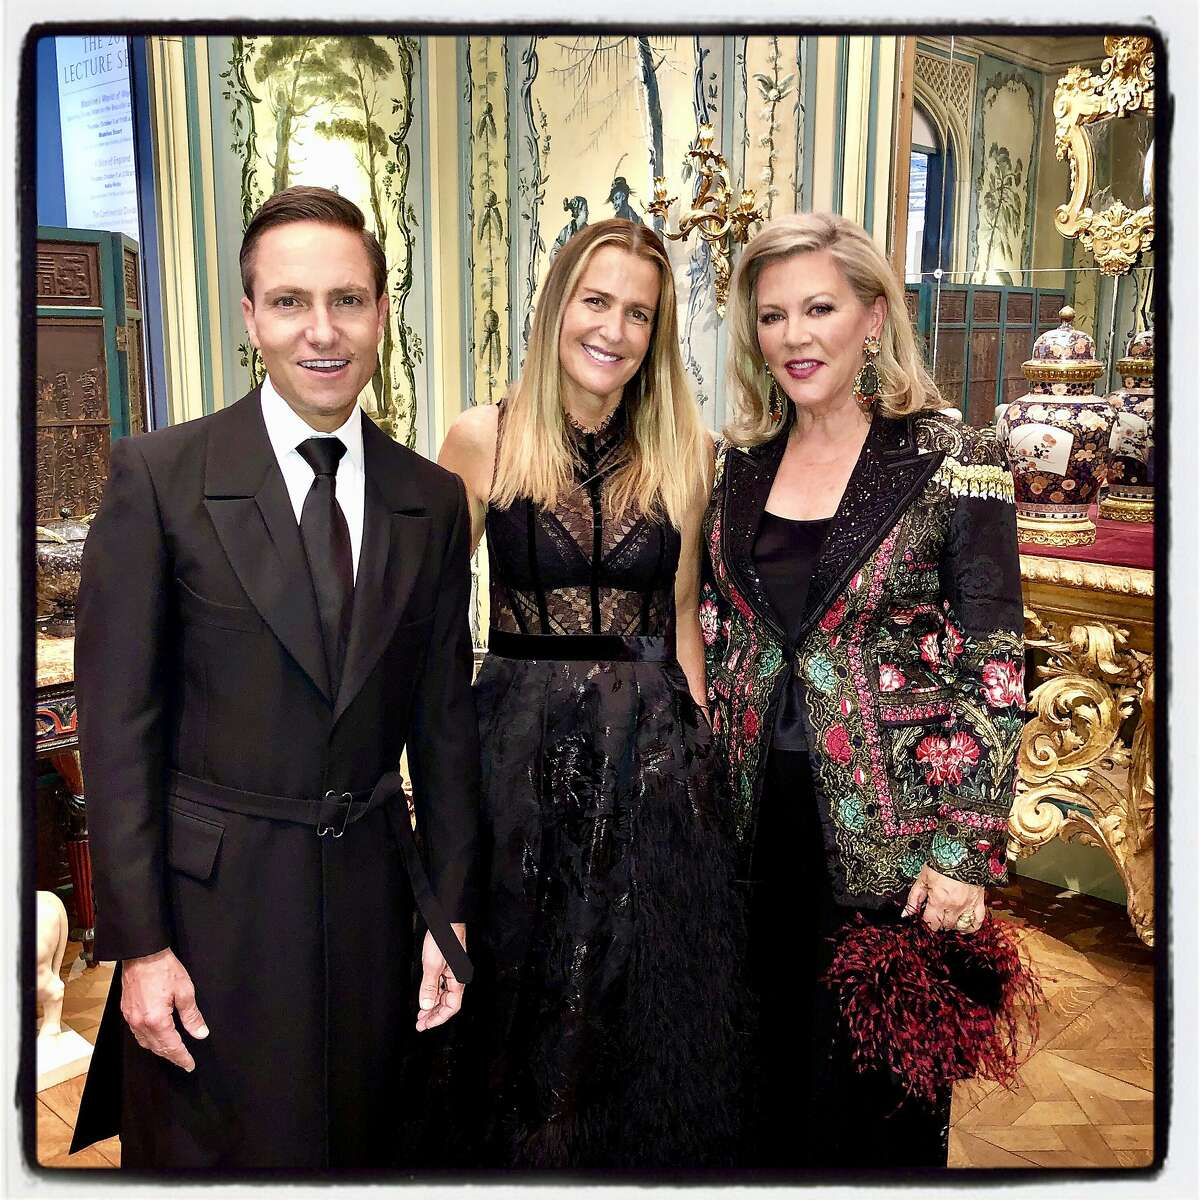 Designers Ken Fulk (left) with India Hicks and Suzanne Tucker at the